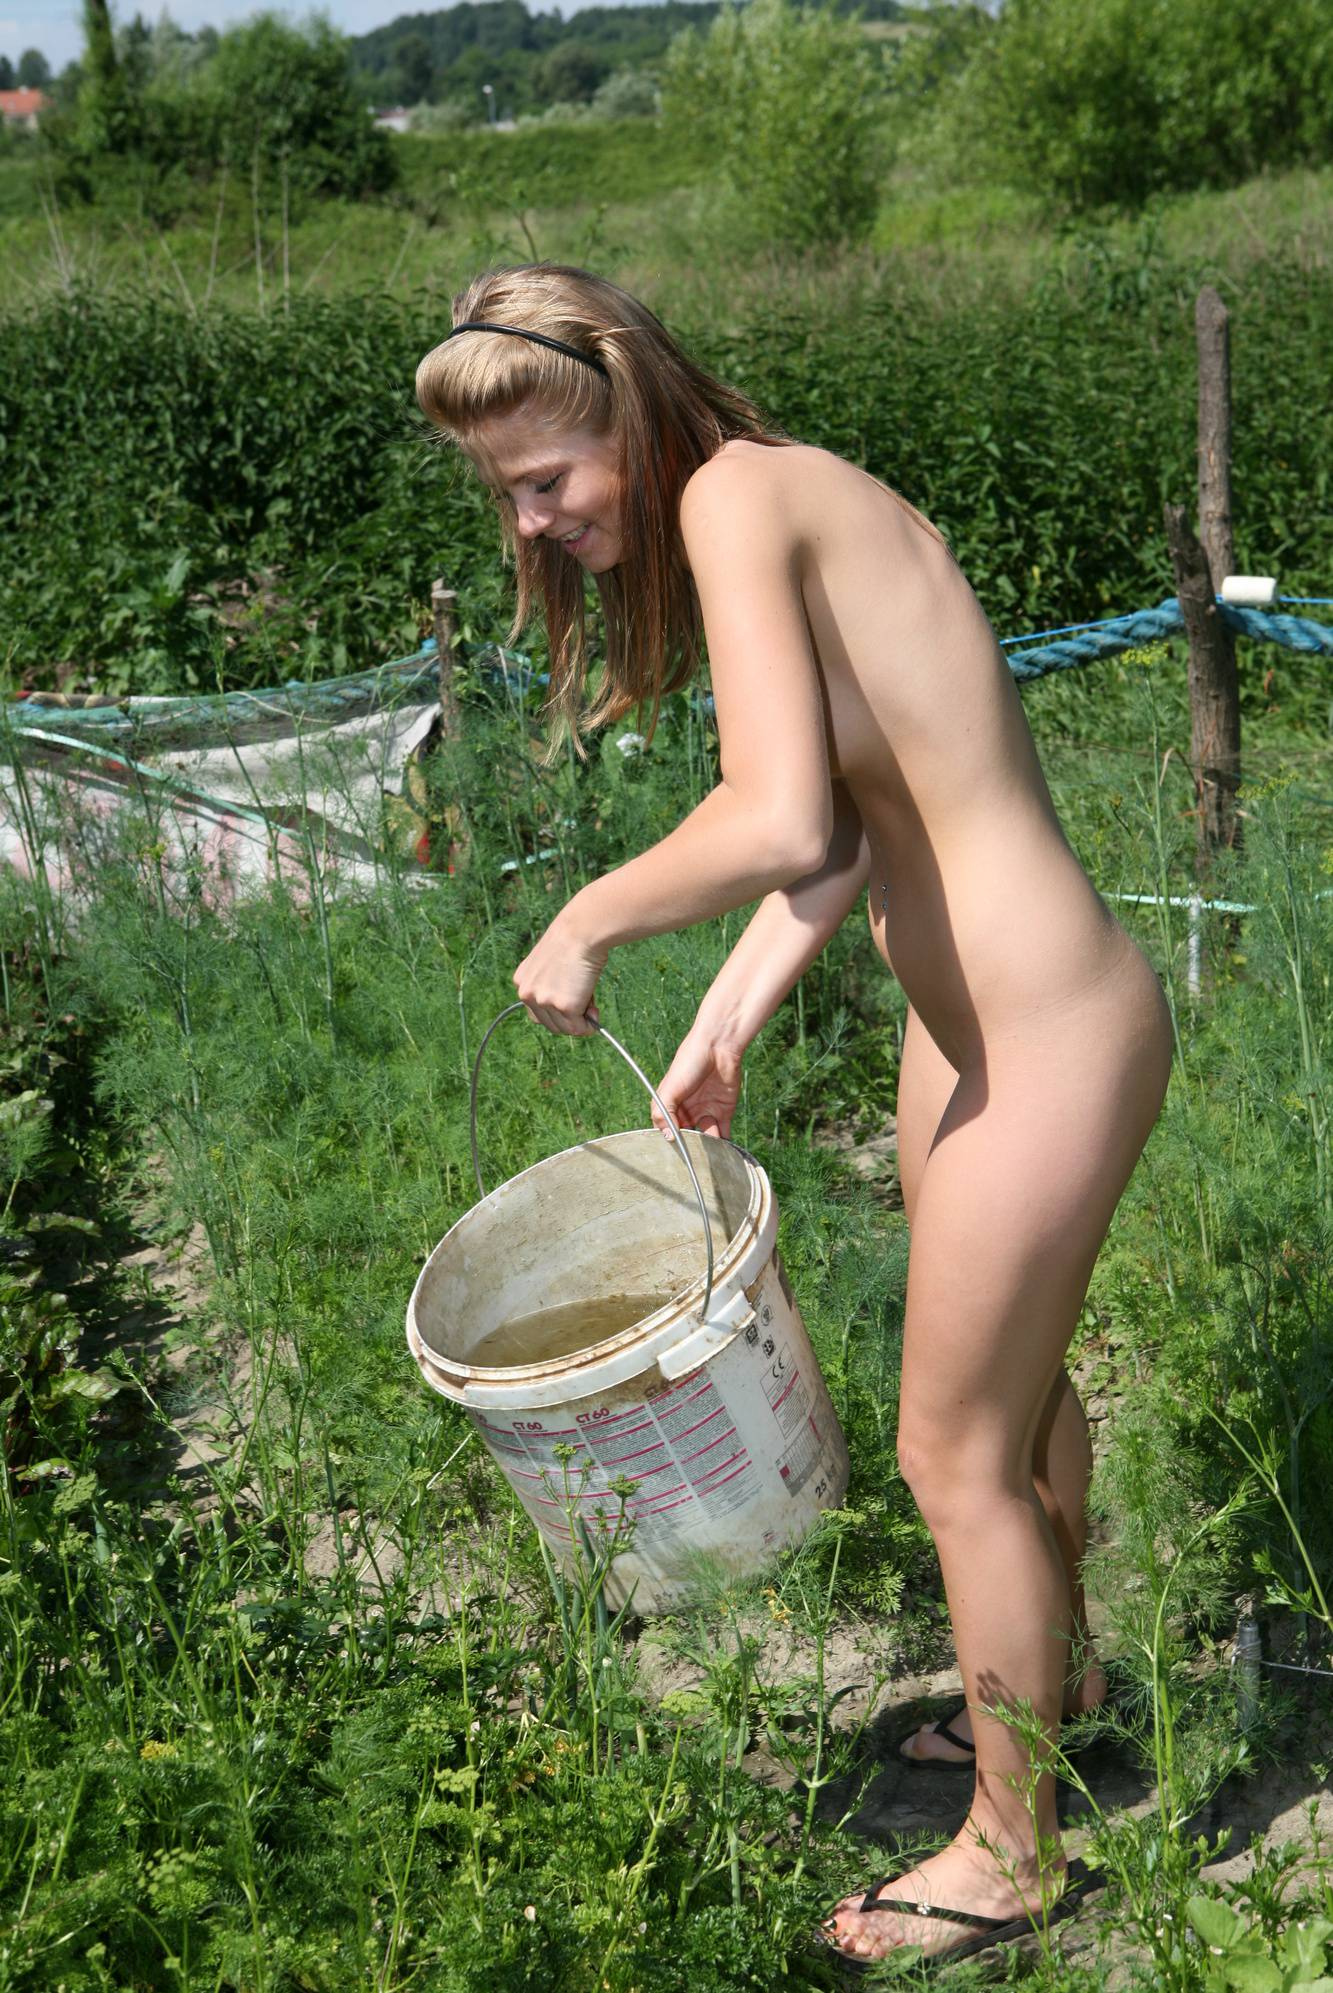 Nudist Pictures Strolling Garden Girls - 1